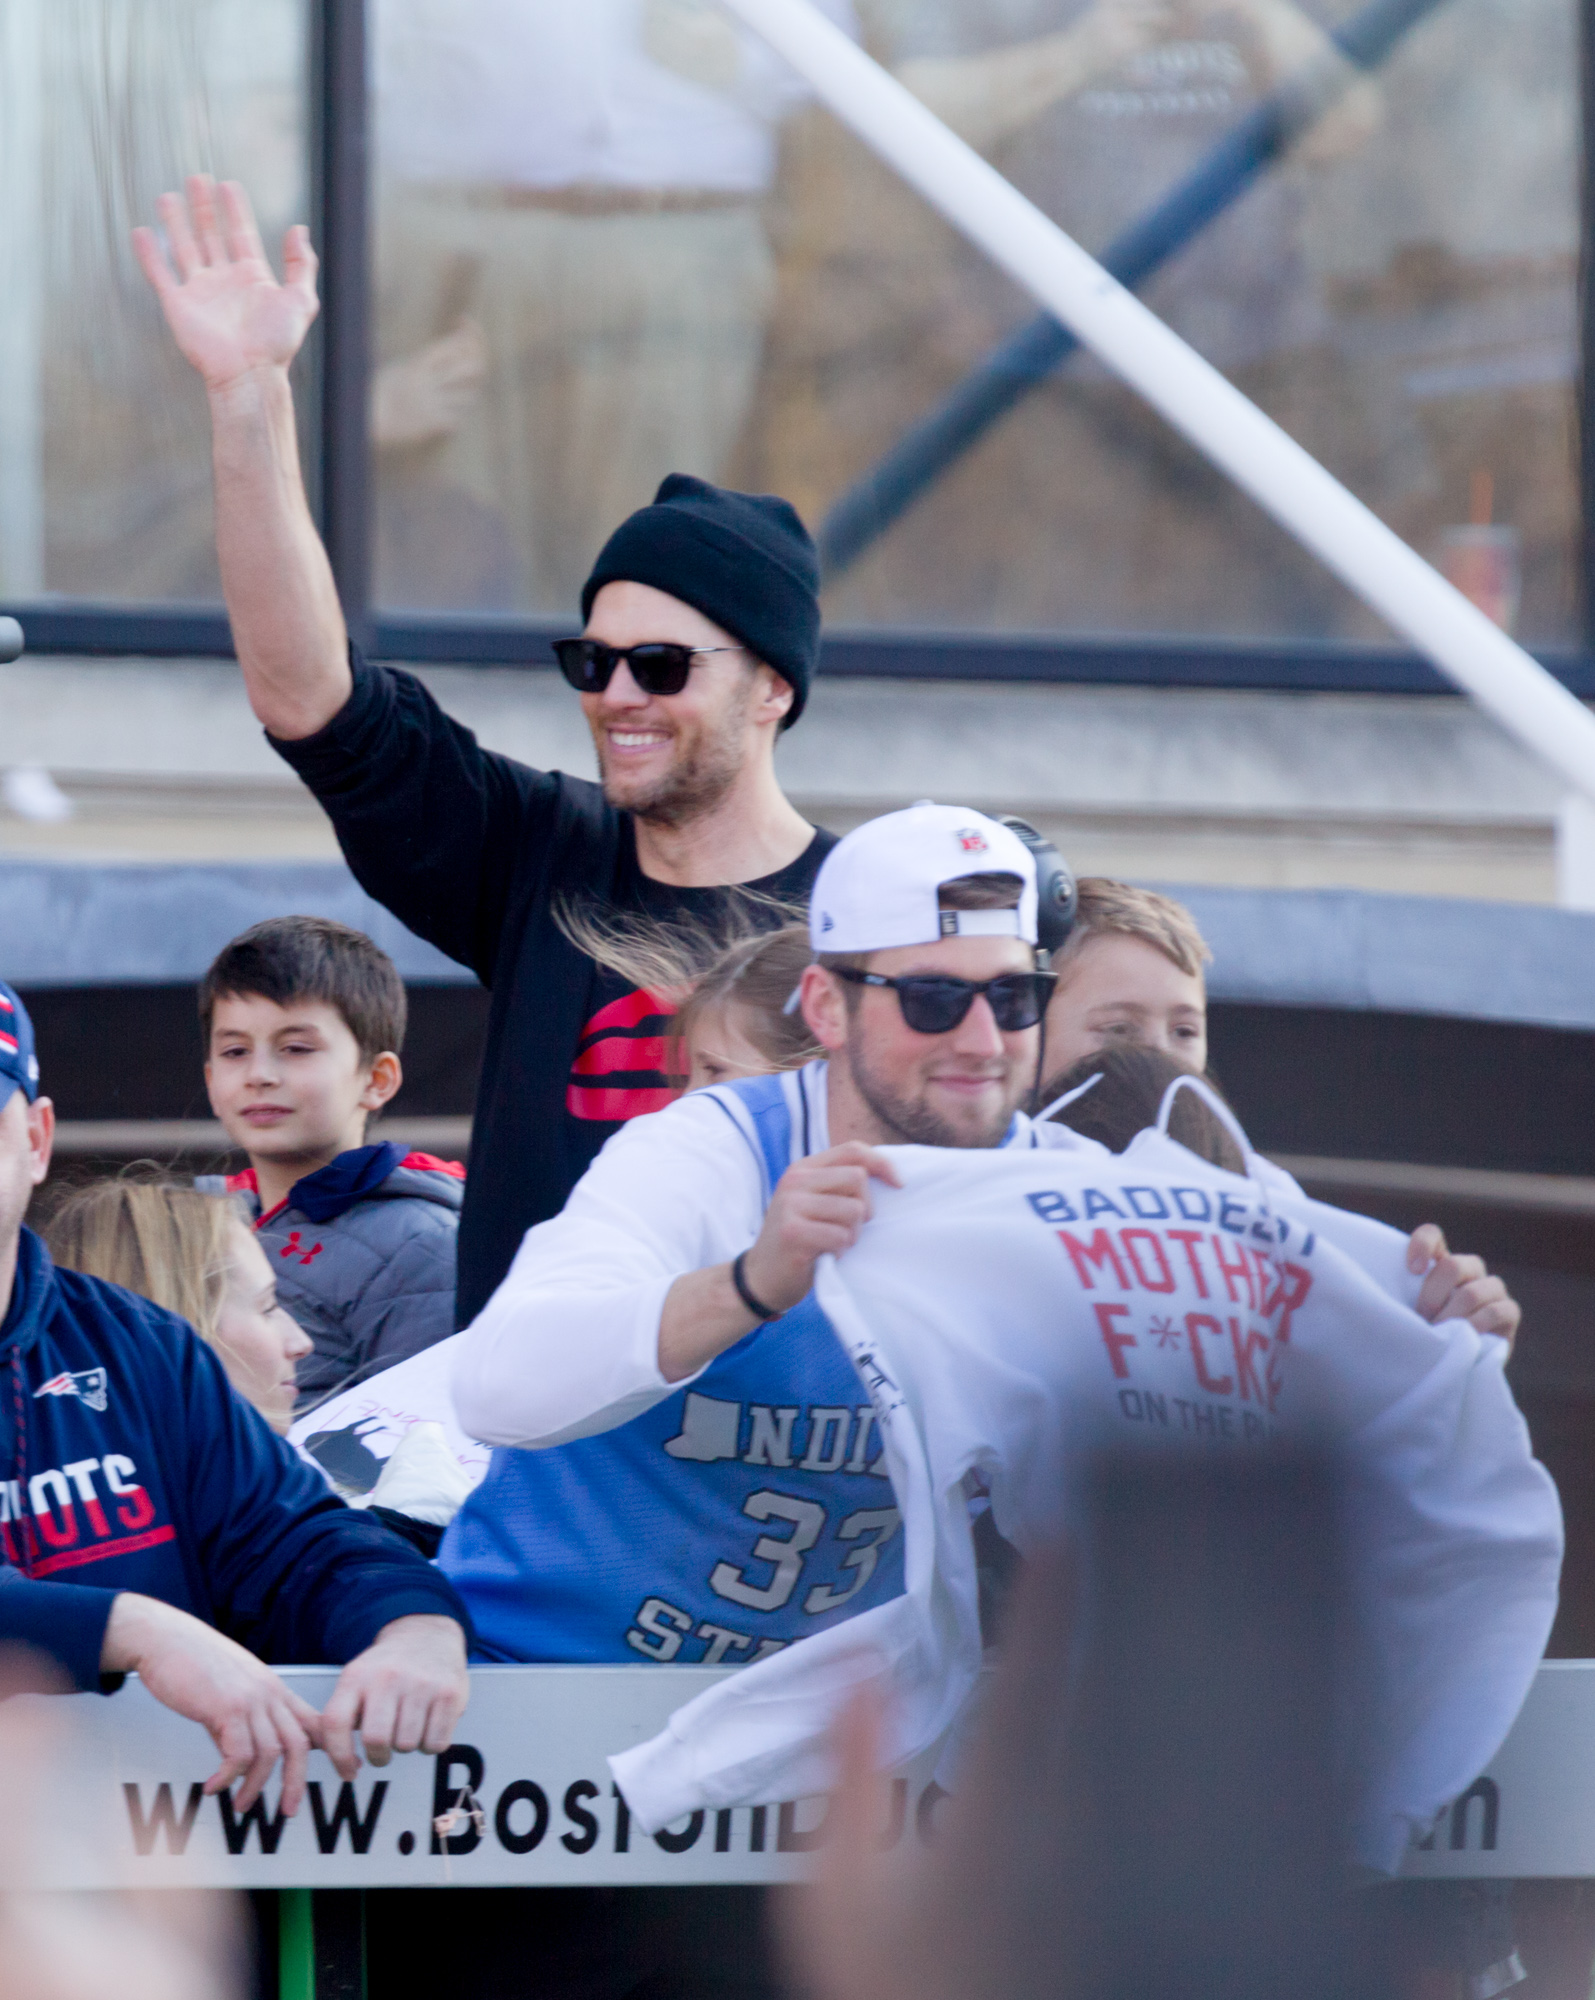 OK - did manage to get a shot of Tom Brady. His son Ben is to camera left. The guy waving the 'baddest' T-shirt is rookie 3rd string quarterback Danny Etling - the future of the franchise.